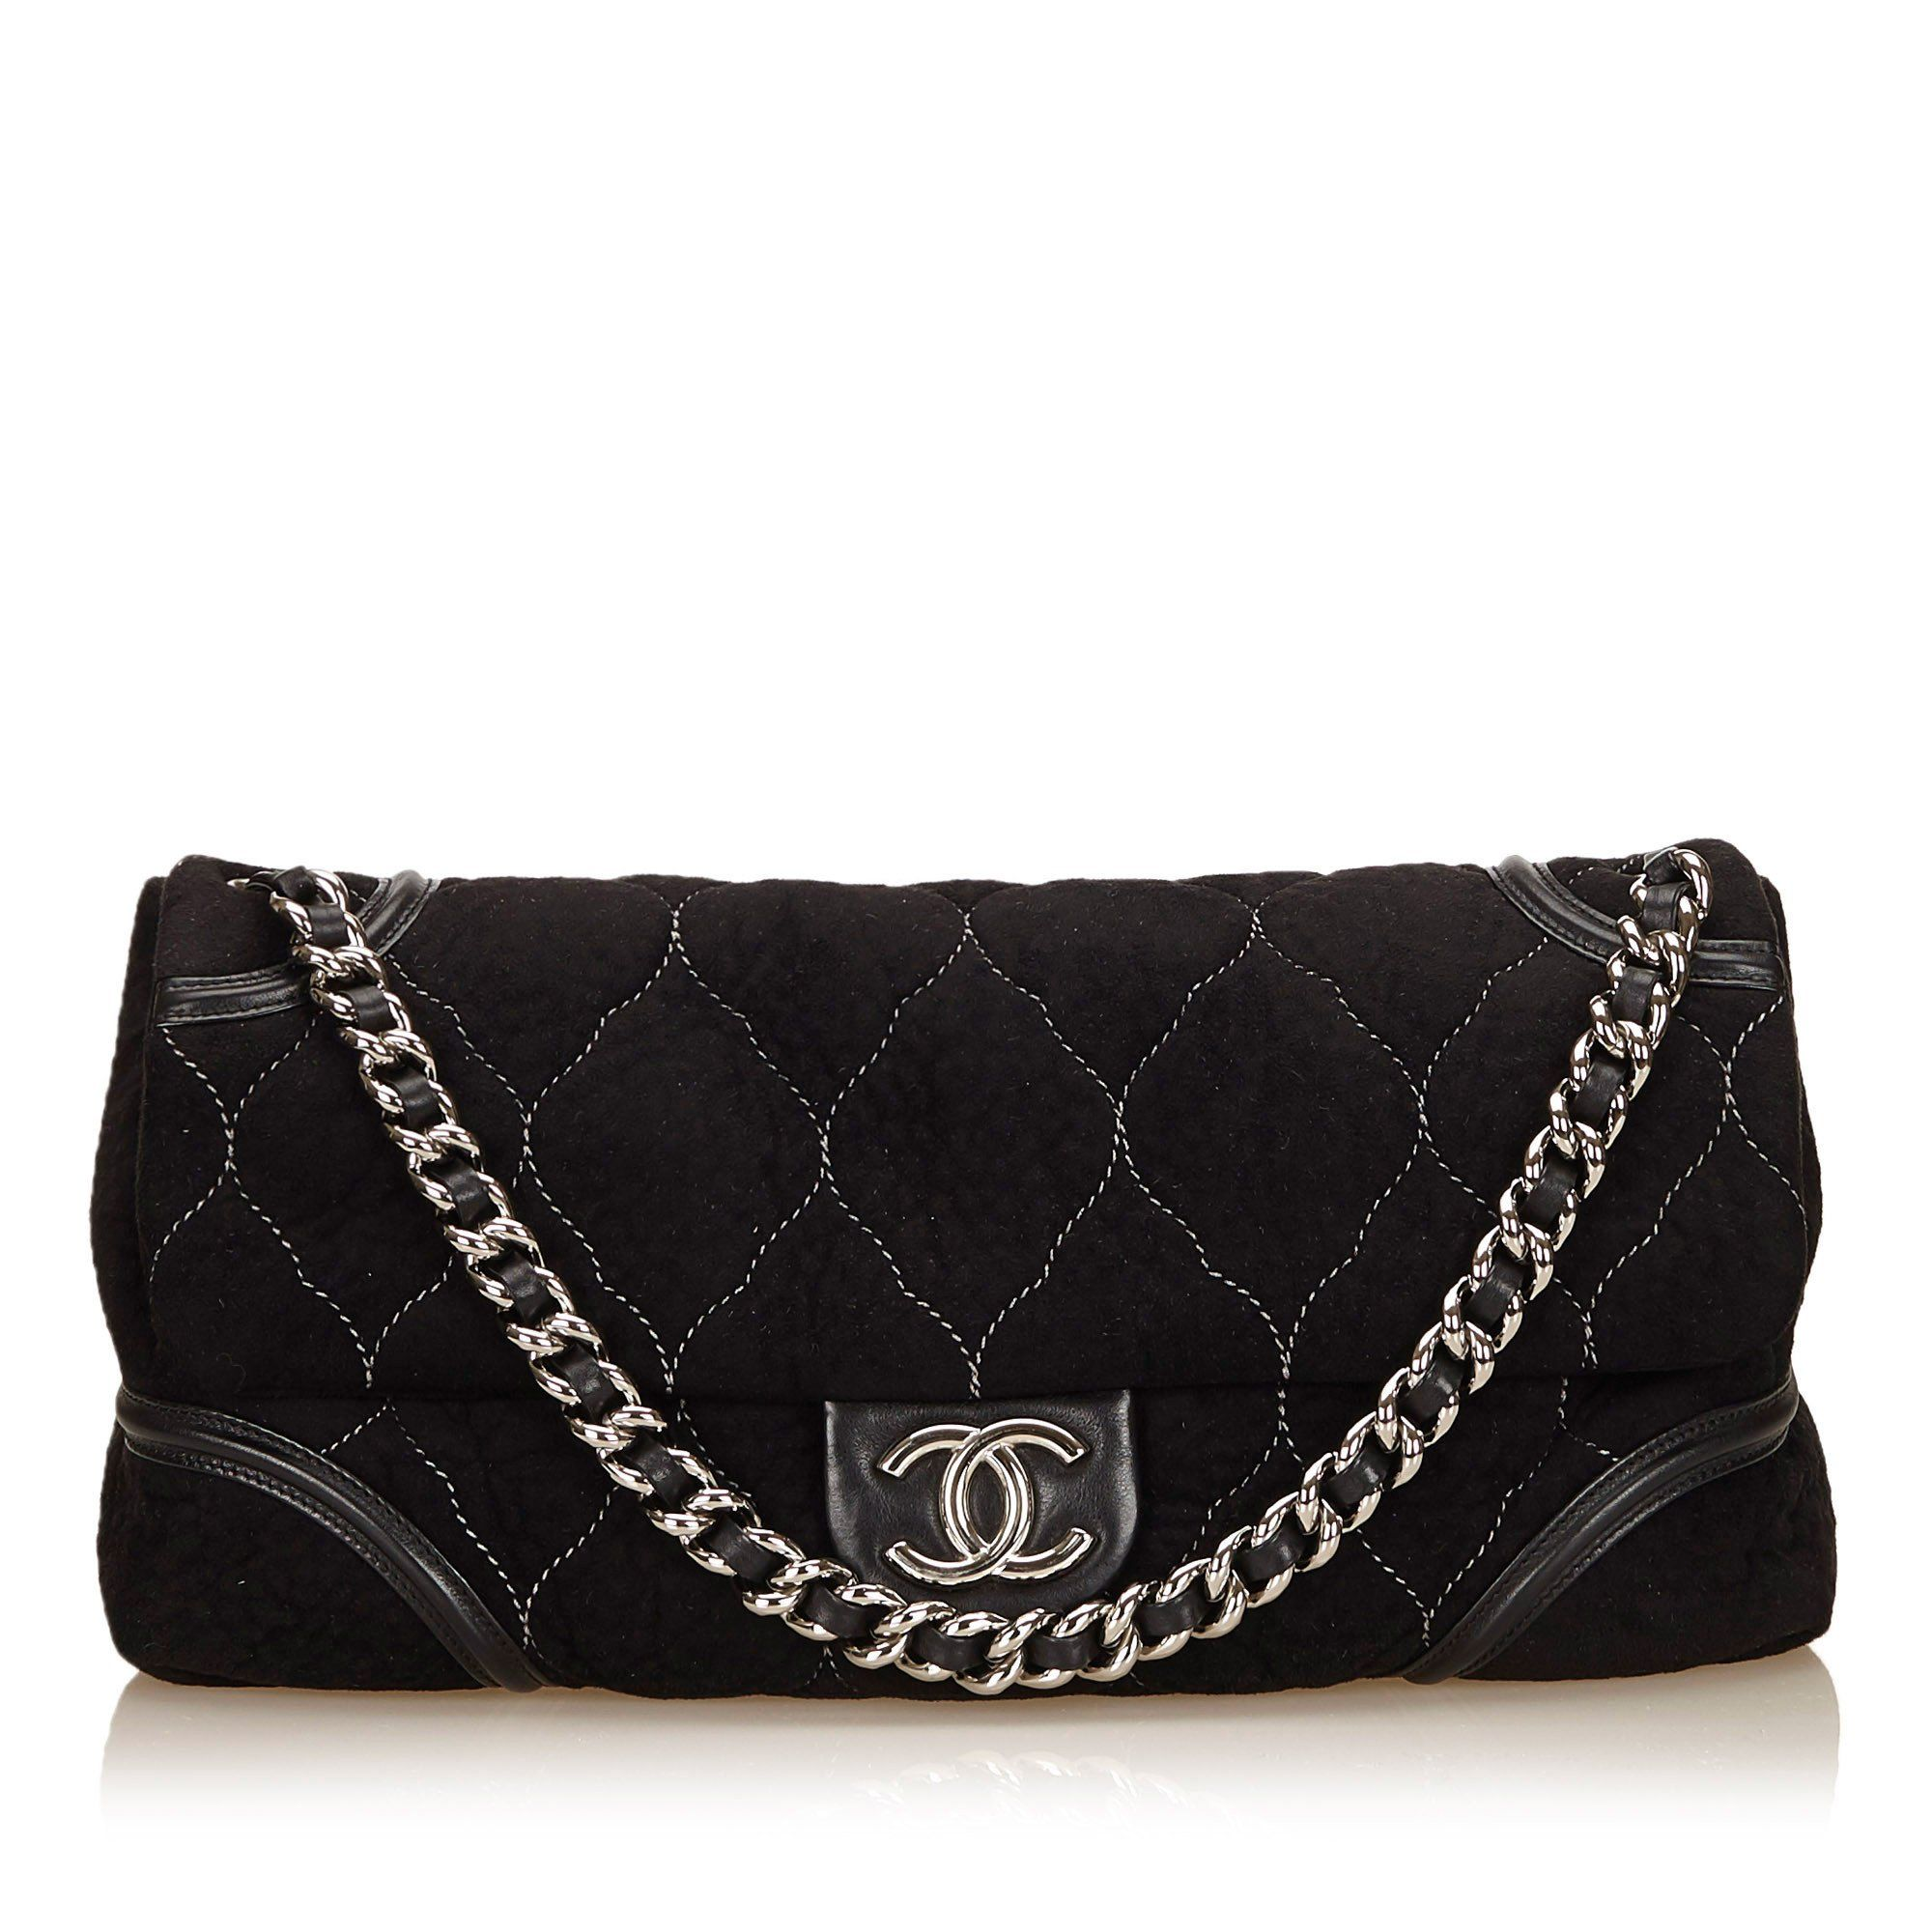 2b52639bc0a12 CHANEL LARGE BLACK SUEDE FLAP BAG WITH WHITE STITCHING